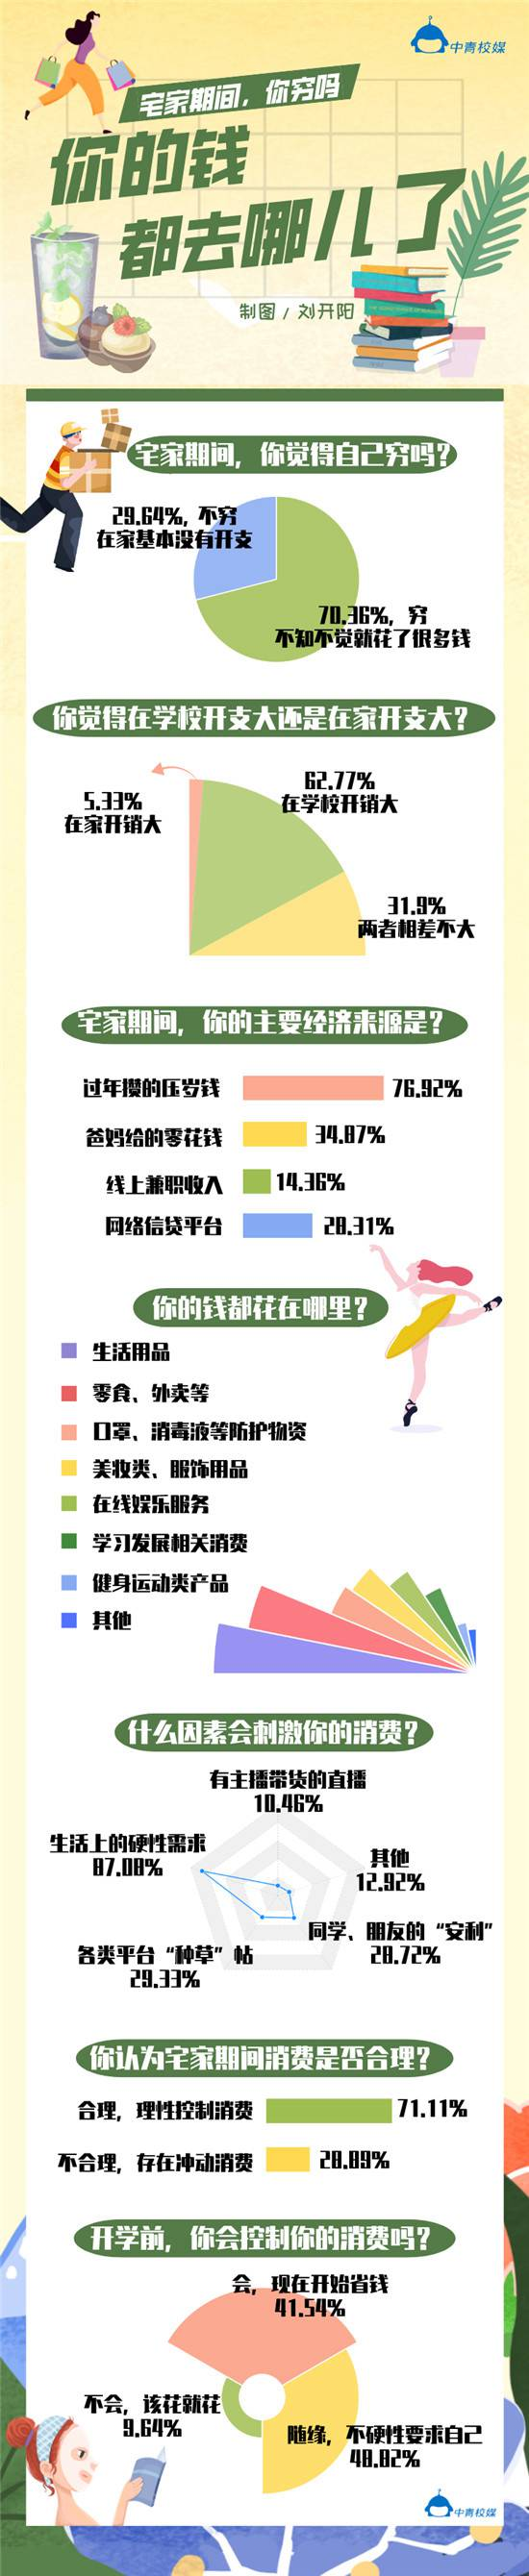 <strong>宅家期间,大学生的钱花哪儿了?</strong>